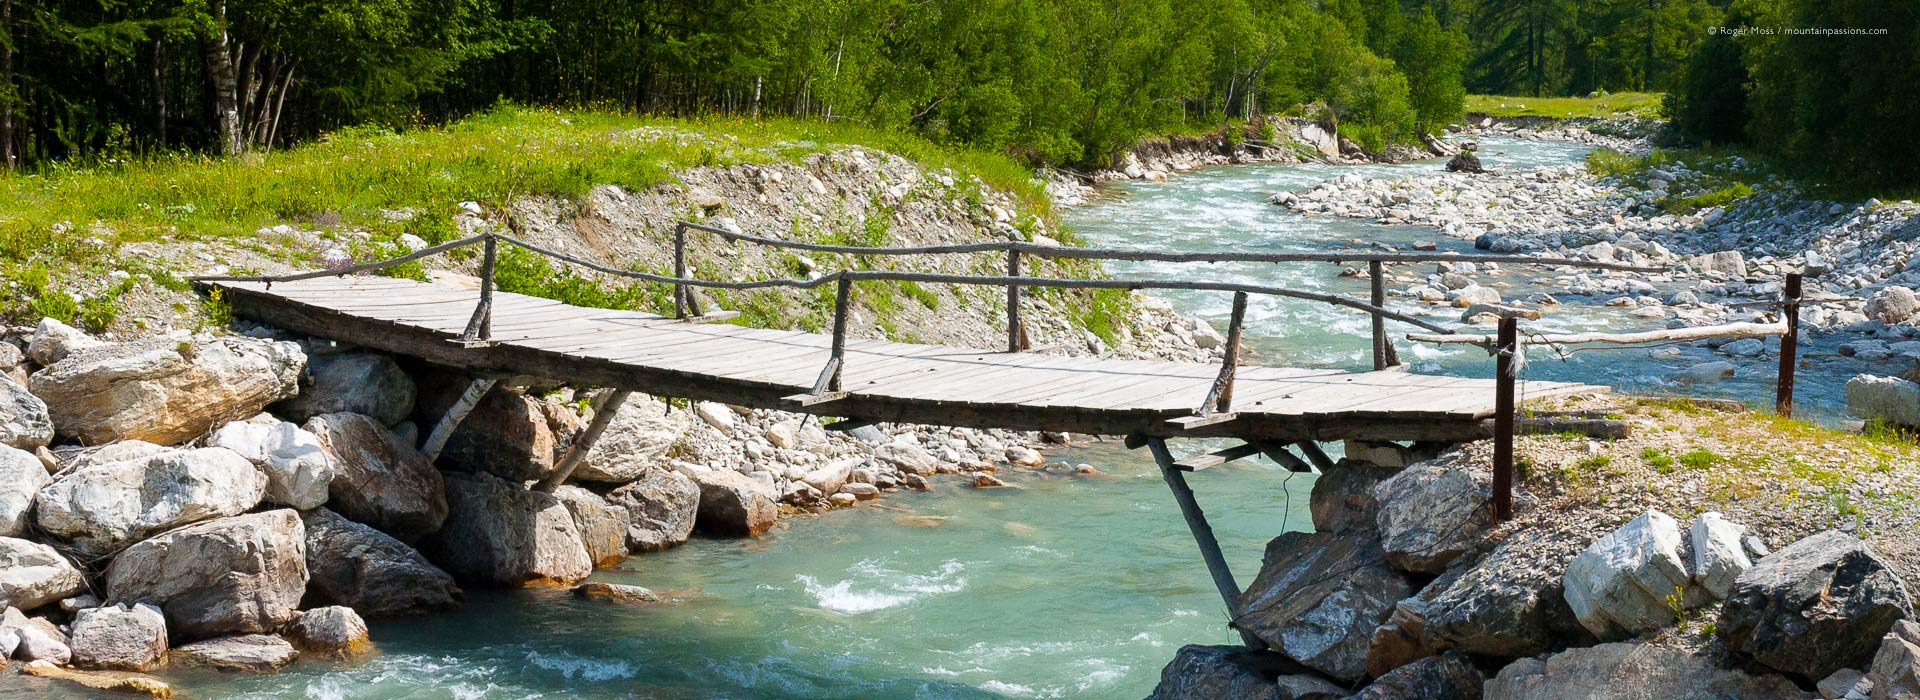 View of rustic wooden footbridge over mountain stream